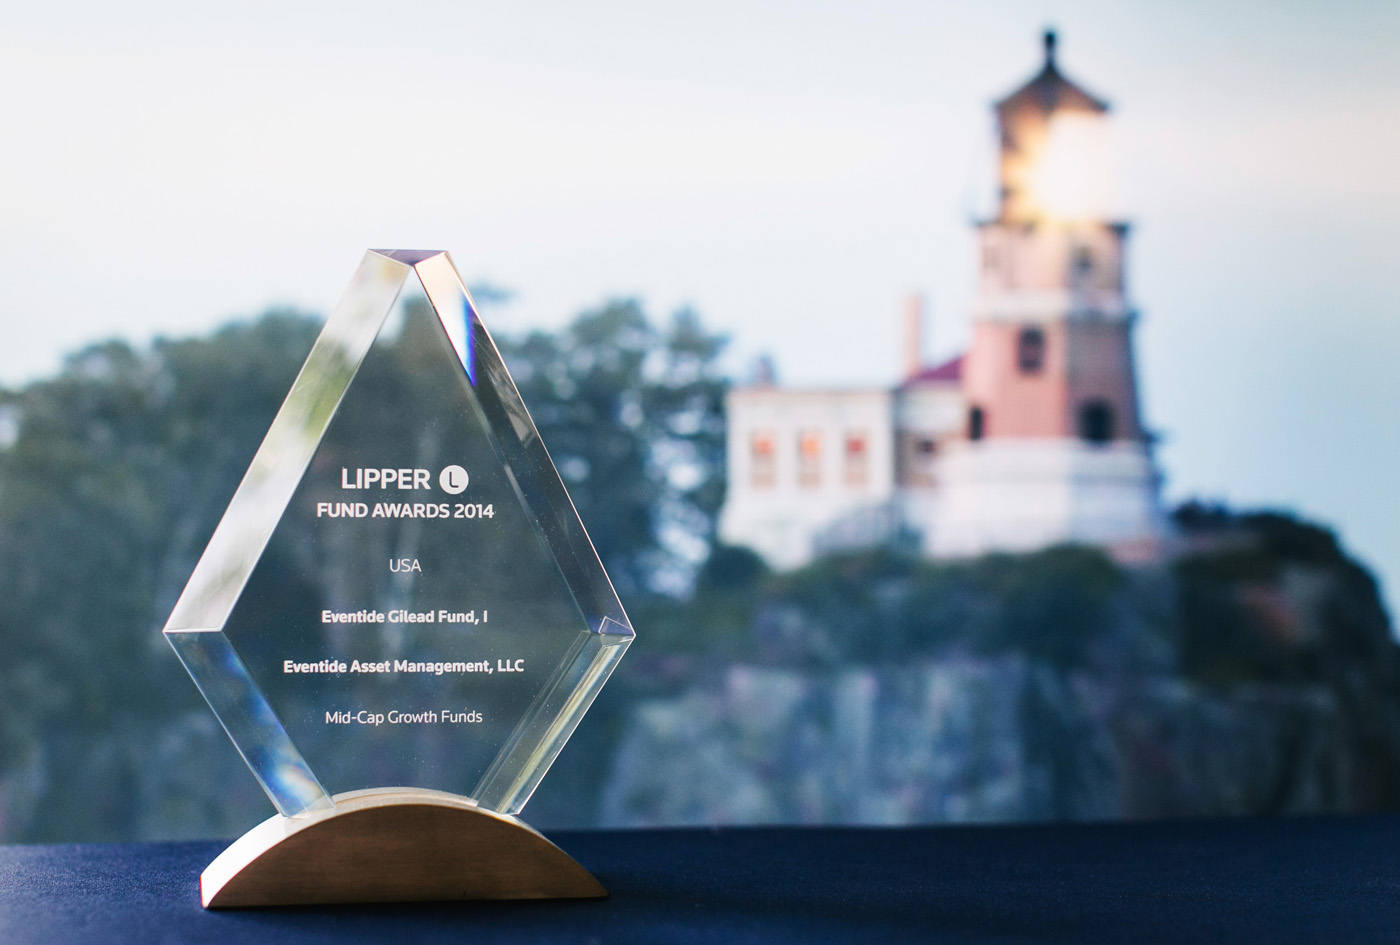 Eventide Gilead Fund Wins 2014 Lipper Fund Award